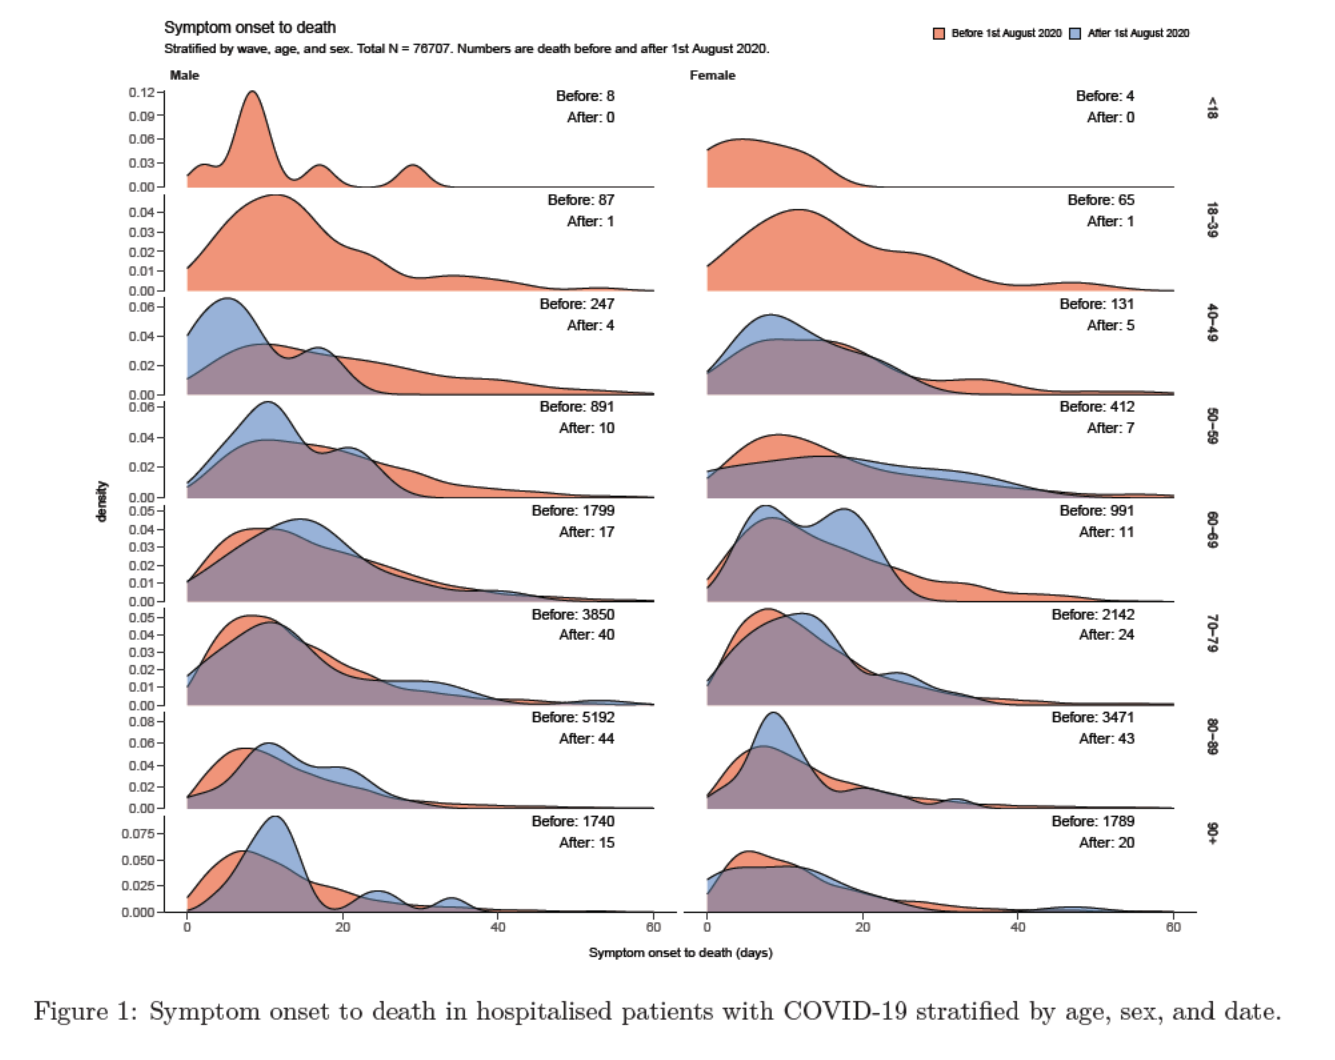 Histograms for onset-to-death, based on [UK Analysis](https://assets.publishing.service.gov.uk/government/uploads/system/uploads/attachment_data/file/928729/S0803_CO-CIN_-_Time_from_symptom_onset_until_death.pdf)